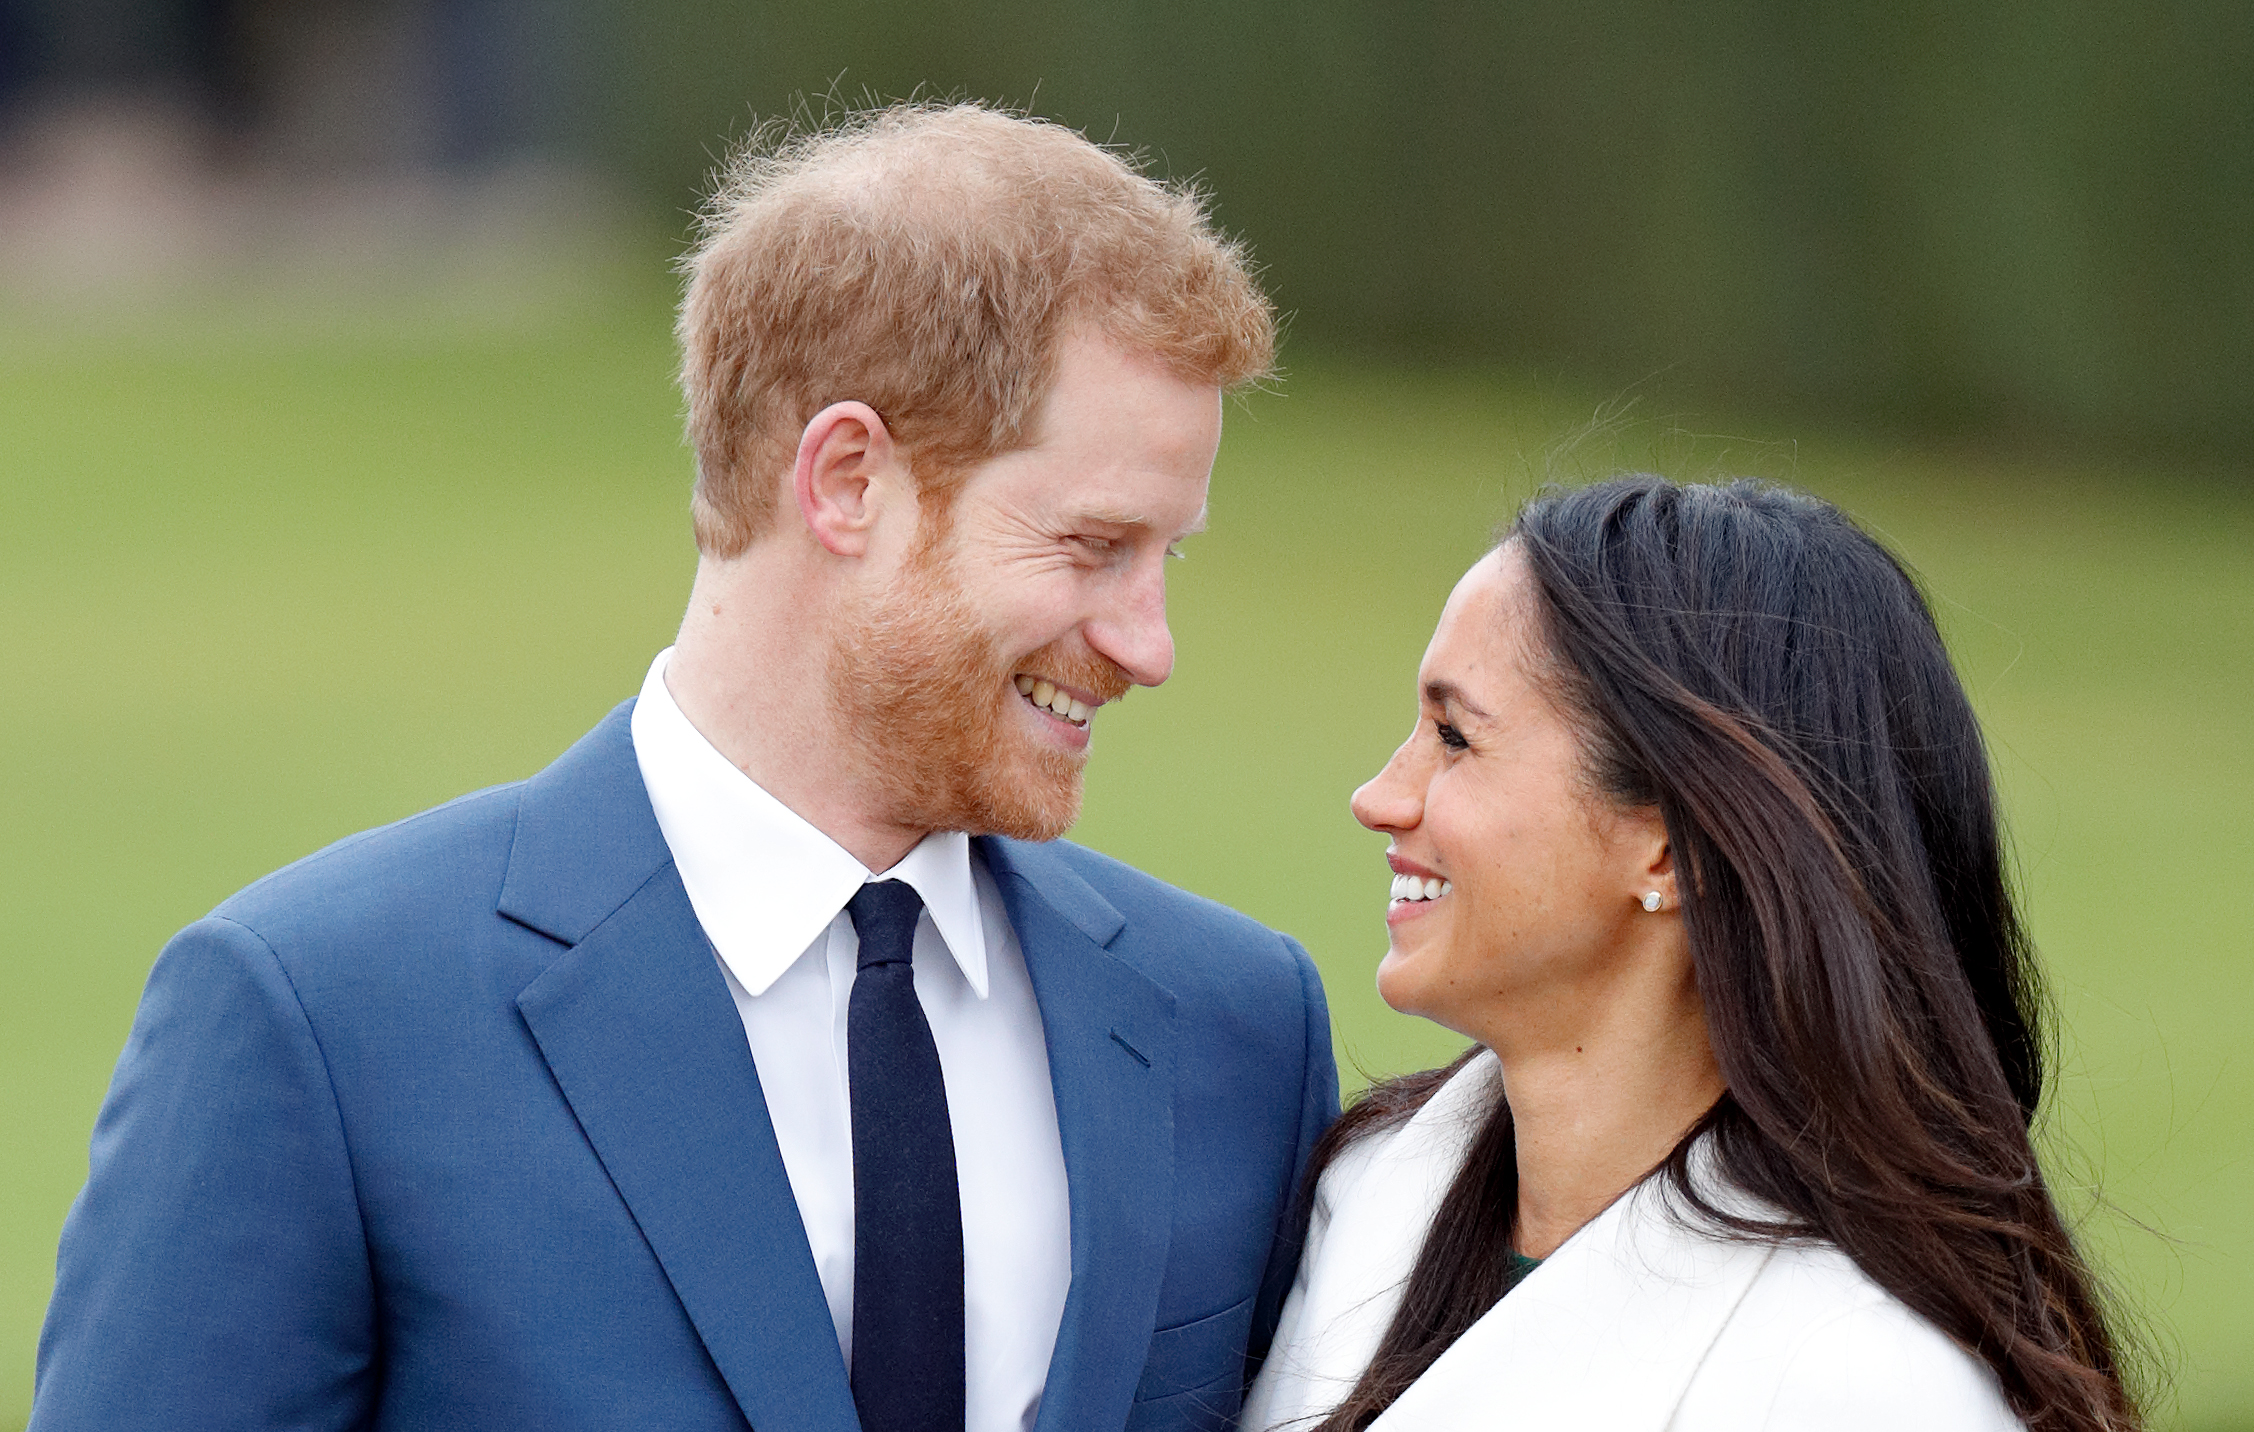 Prince Harry and Meghan Markle attend an official photocall to announce their engagement at The Sunken Gardens, Kensington Palace on November 27, 2017 in London, England.